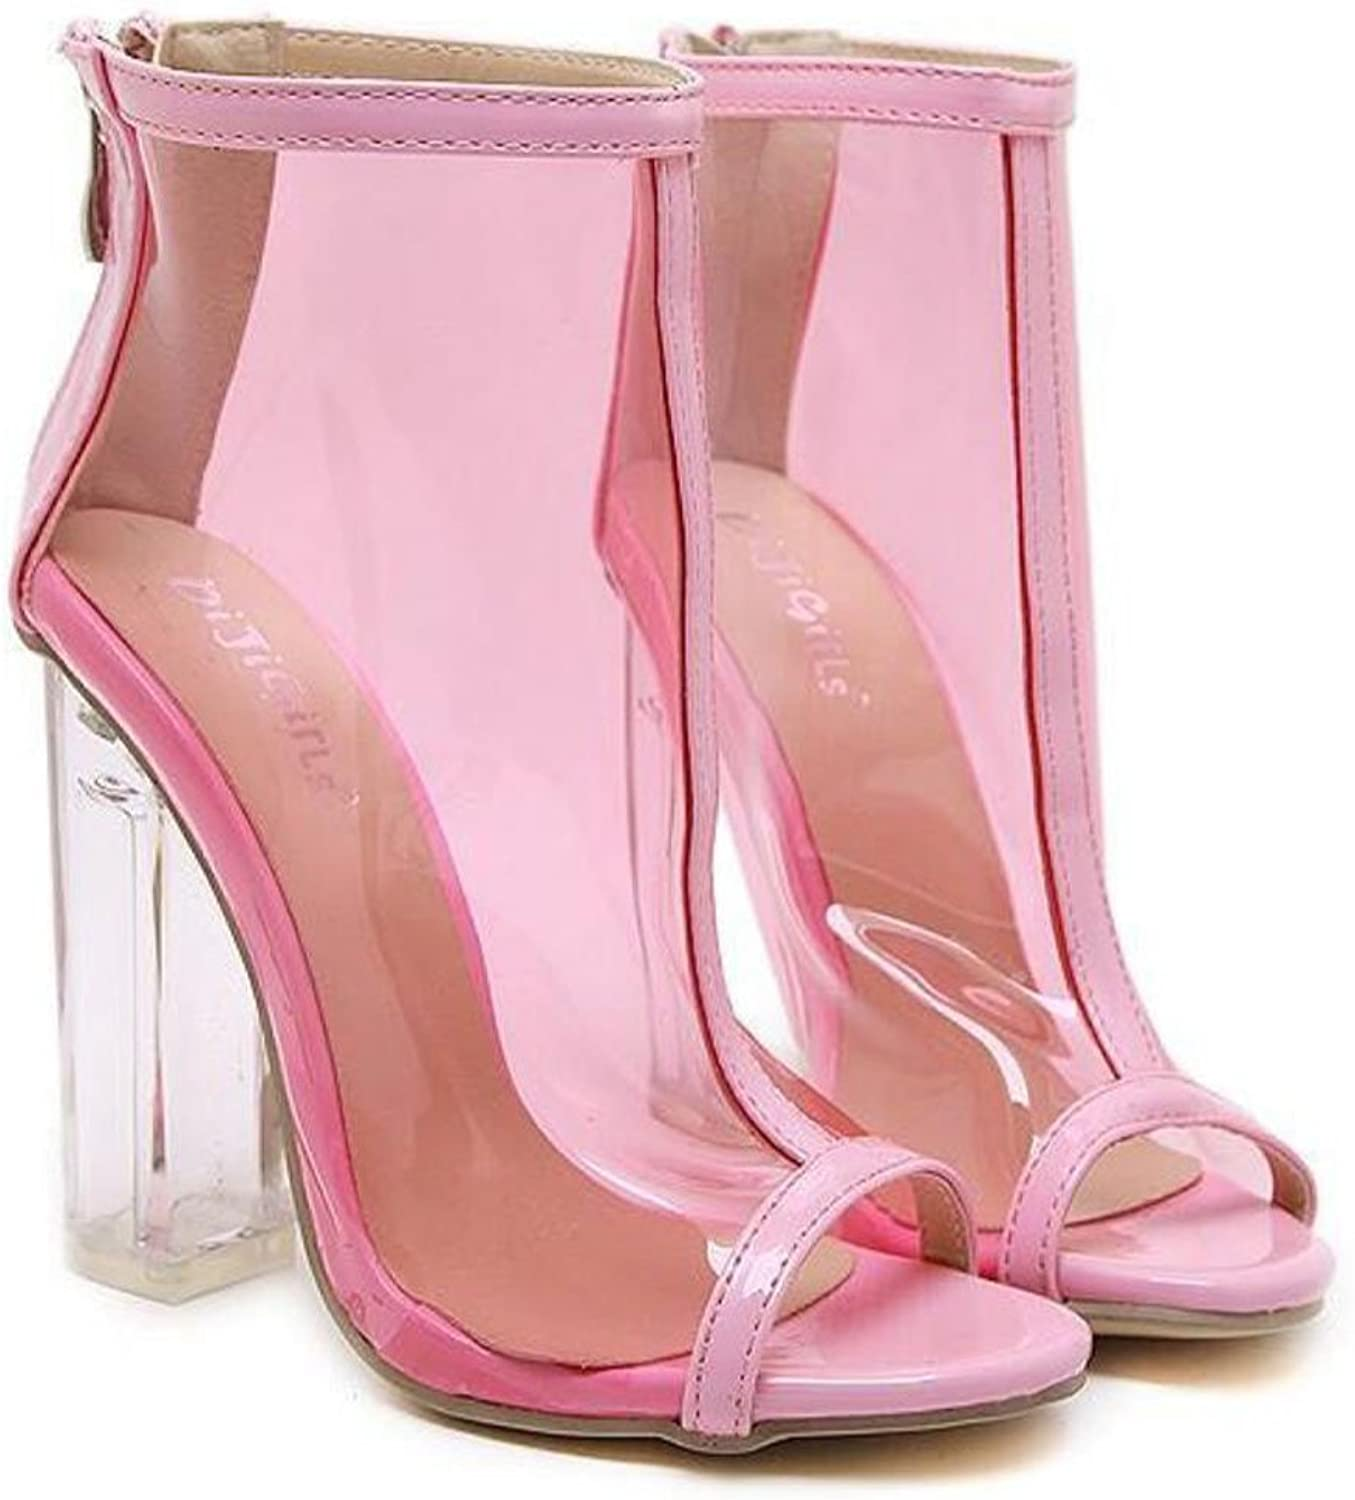 LZWSMGS Plastic Women's shoes Fashion Jelly Transparent High-Heeled Nude Boots Sandals Wild High-Heeled shoes Pink 35-40cm Ladies Sandals (color   Pink, Size   6 US)